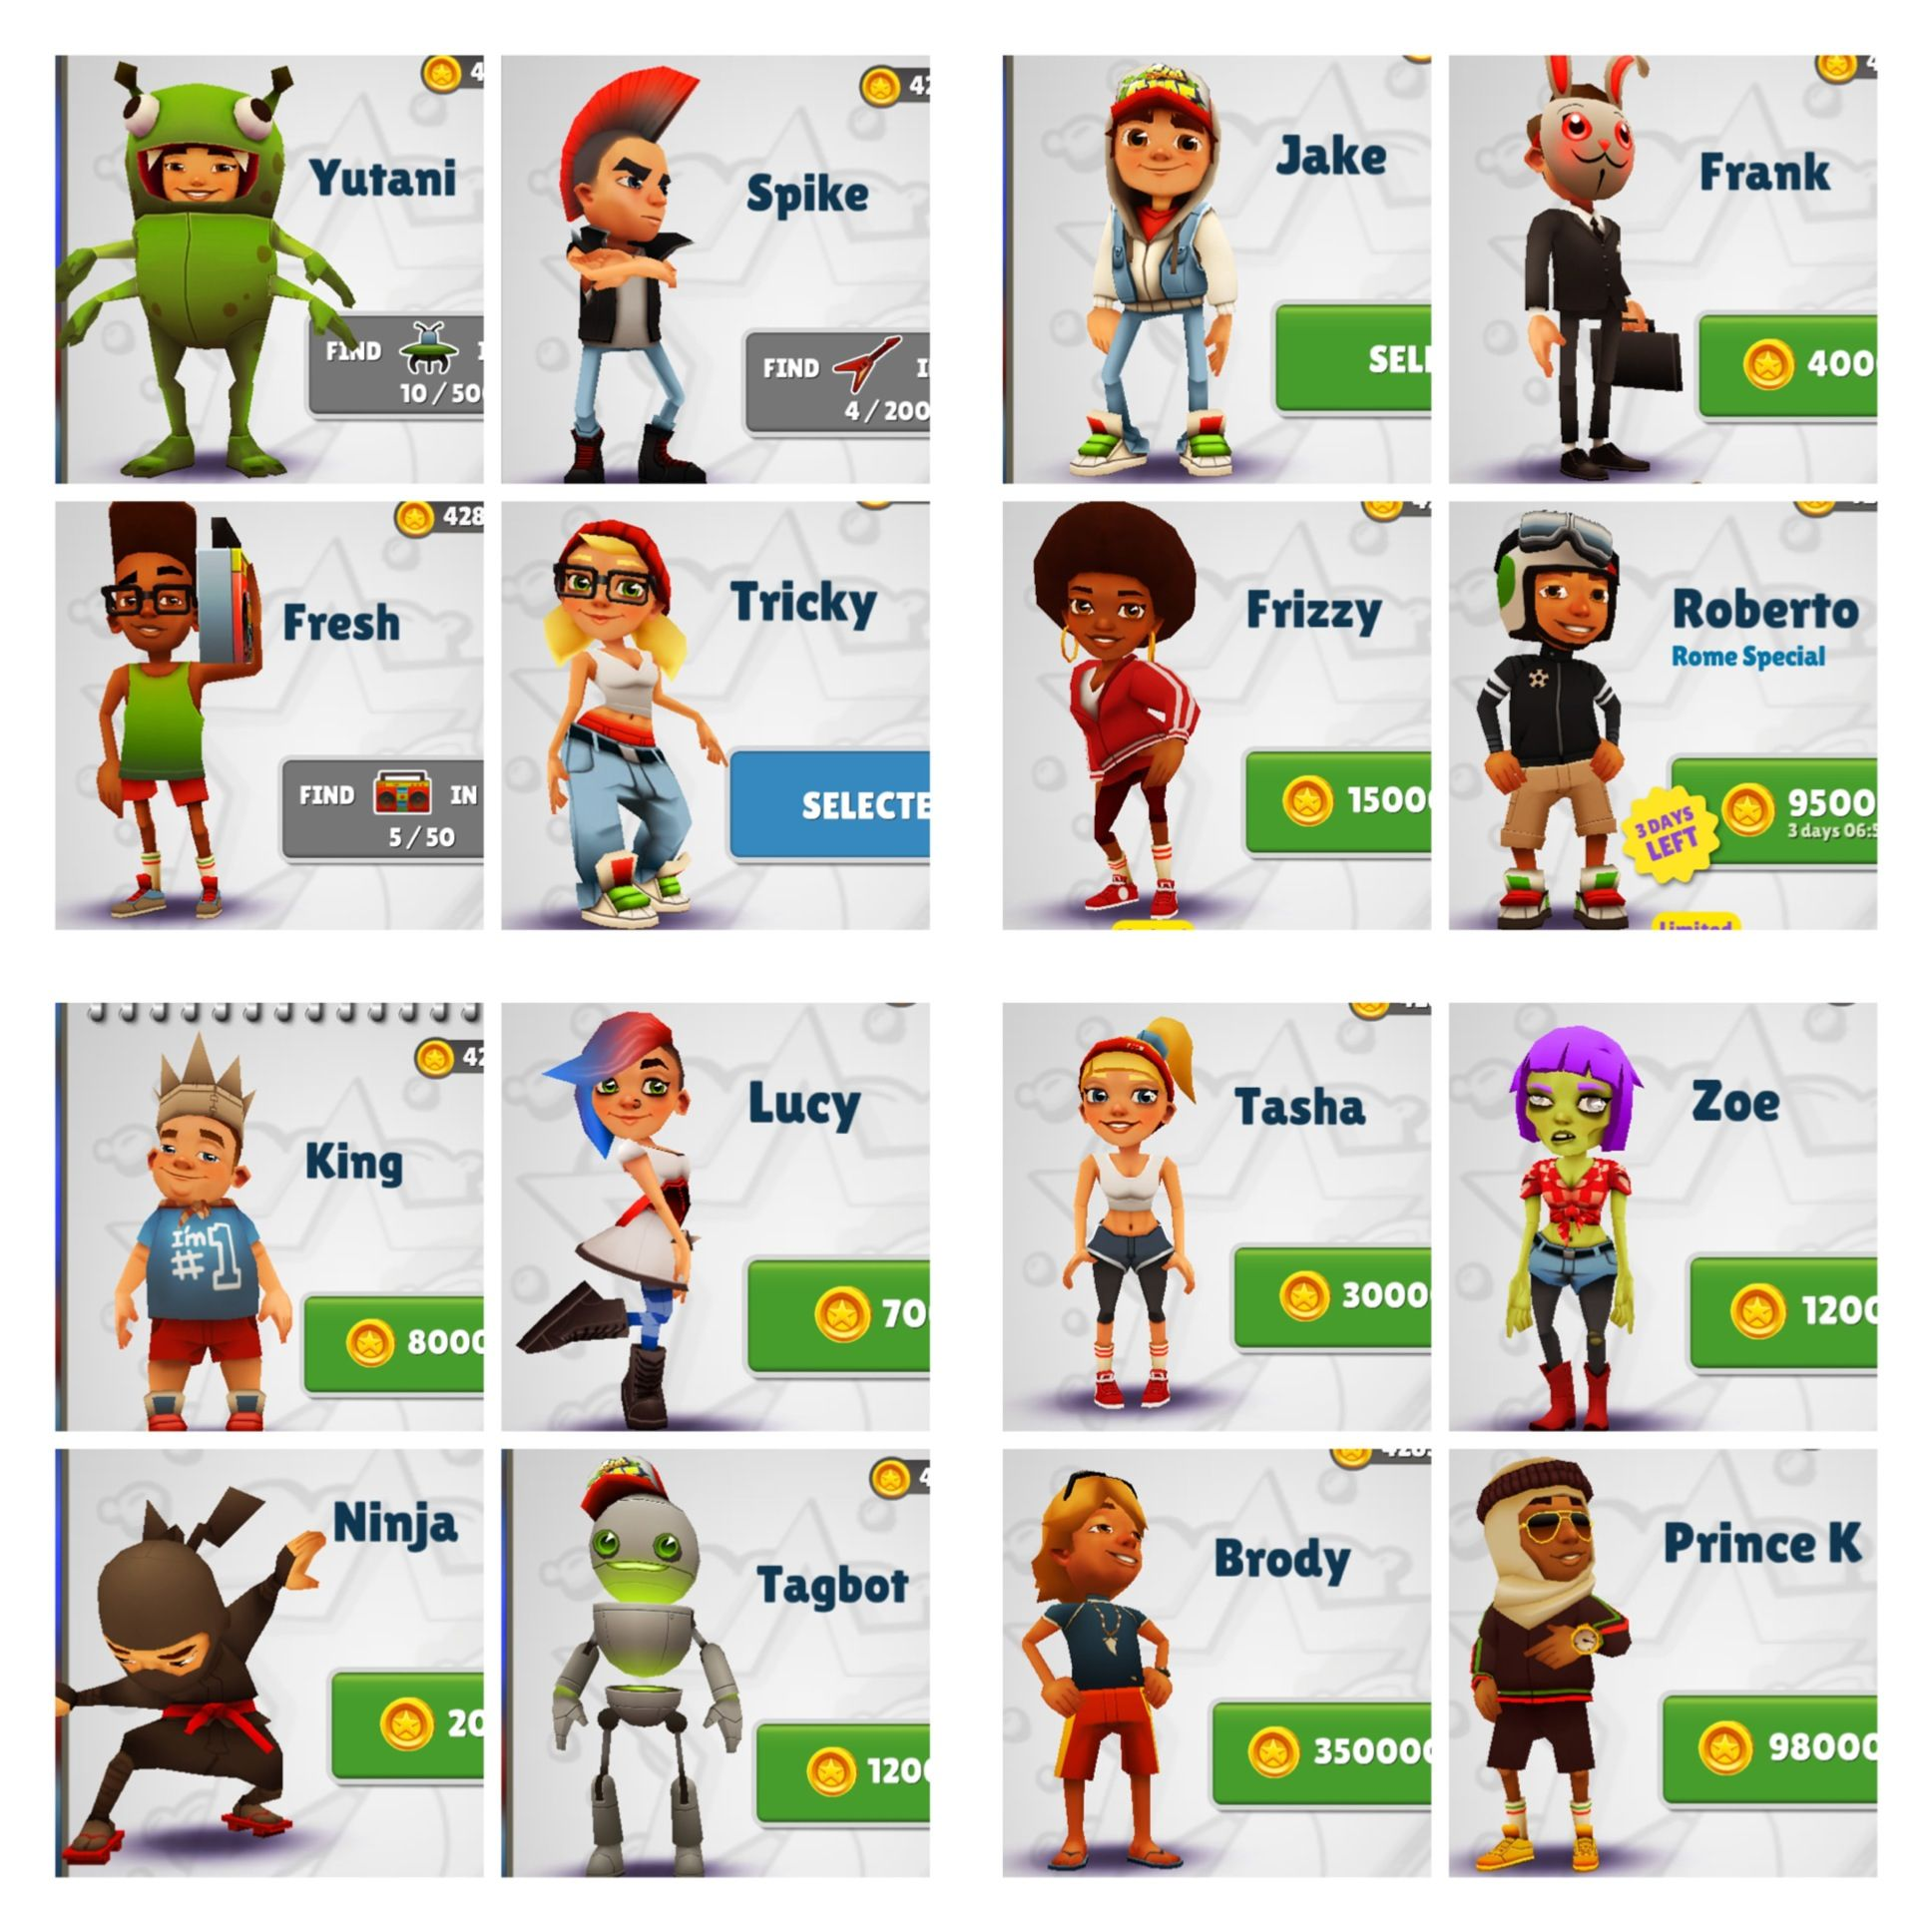 a8b9829817dd07d7179bd42e2cbebe1b - How To Get All The Characters In Subway Surfers